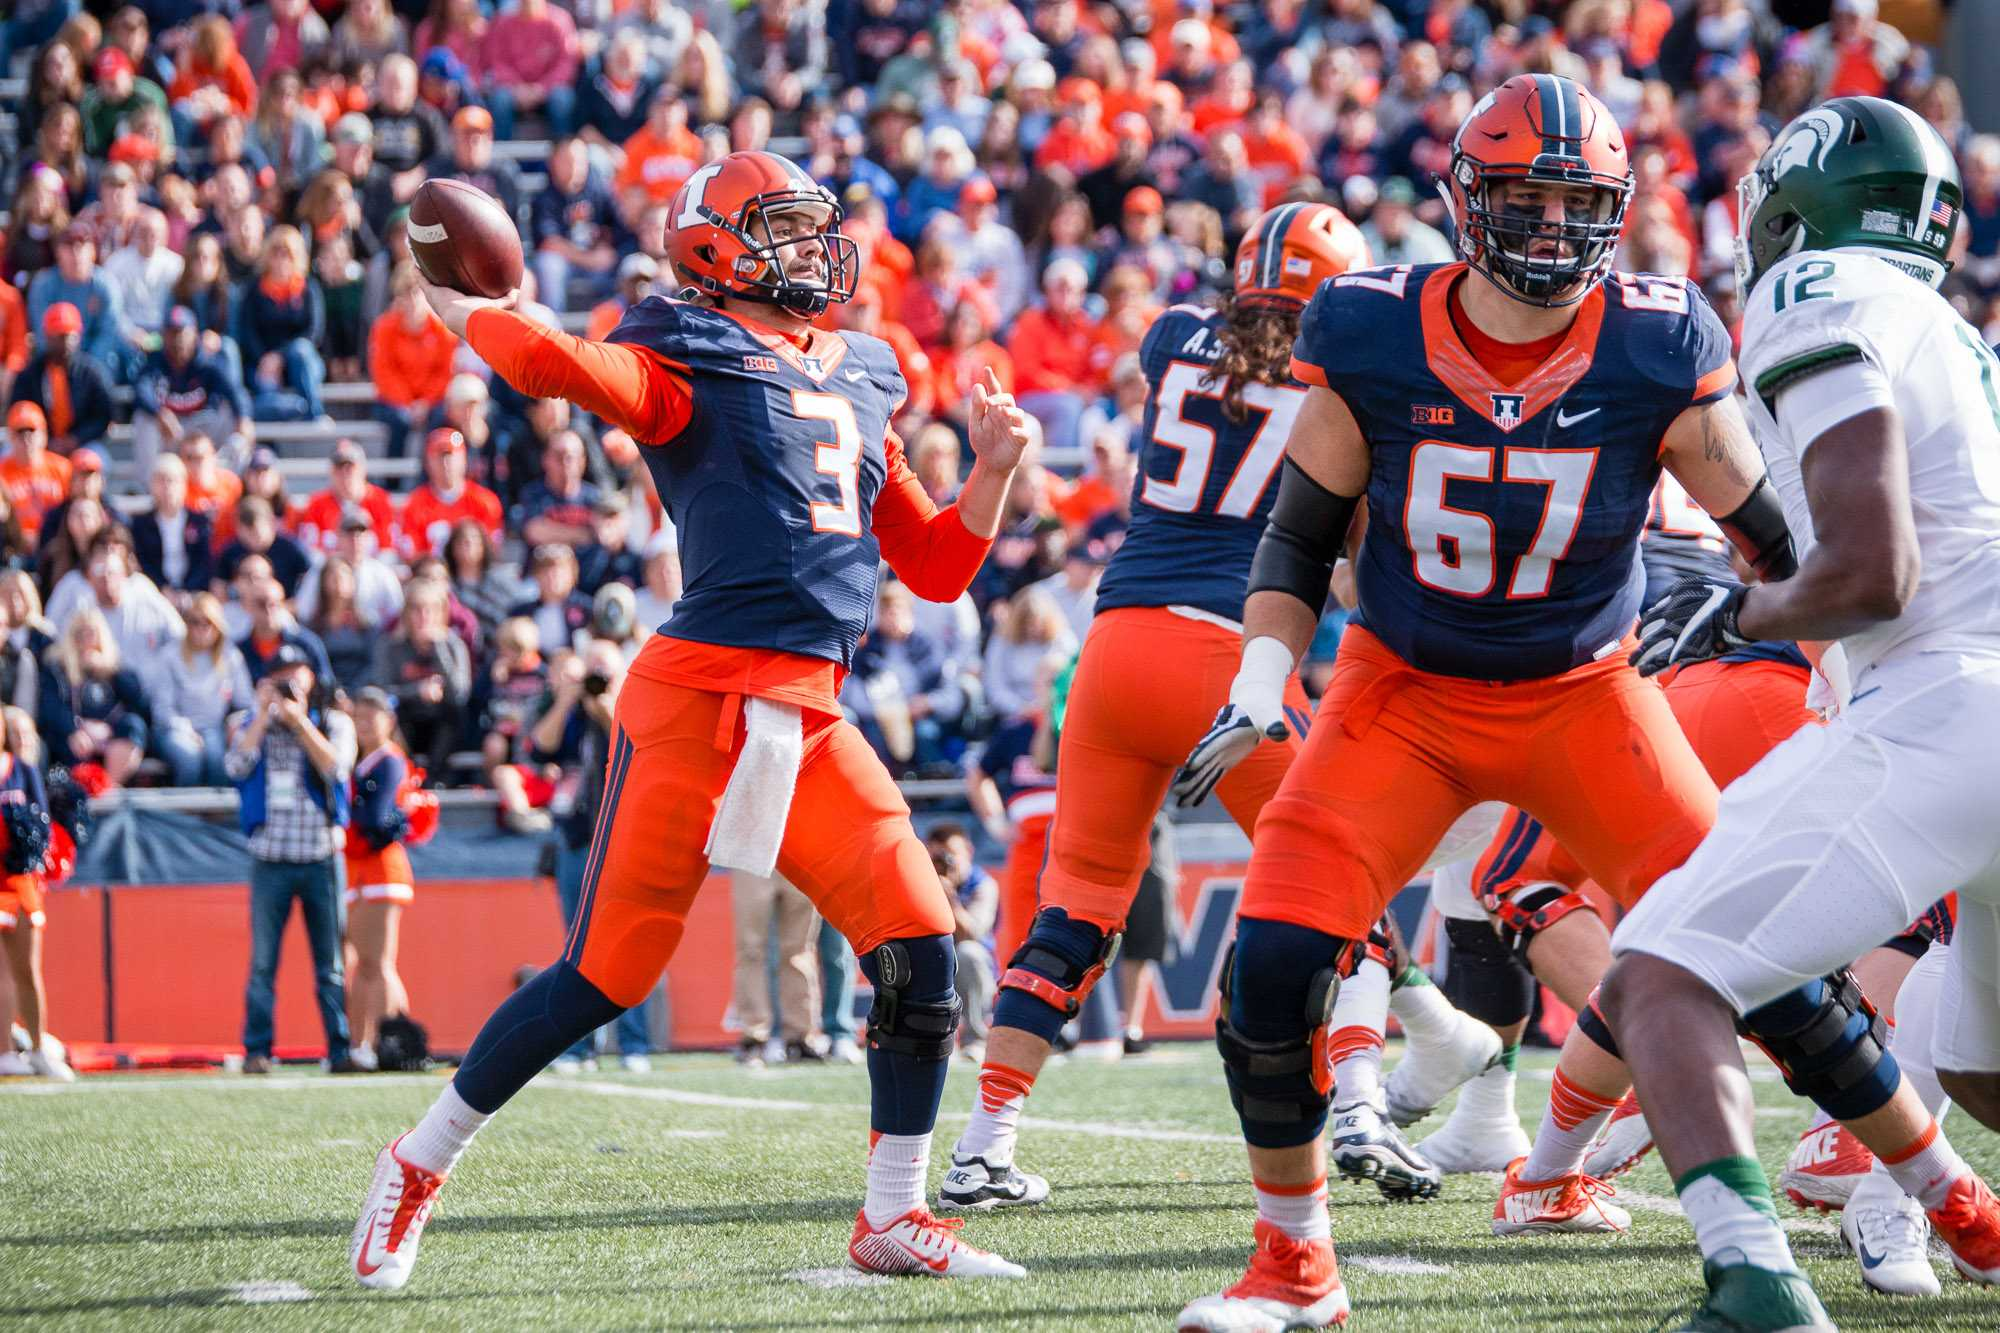 Illinois quarterback Jeff George Jr. (3) passes the ball during the first half of game against Michigan State at Memorial Stadium on Saturday, November 5. The Illini won 31-27.